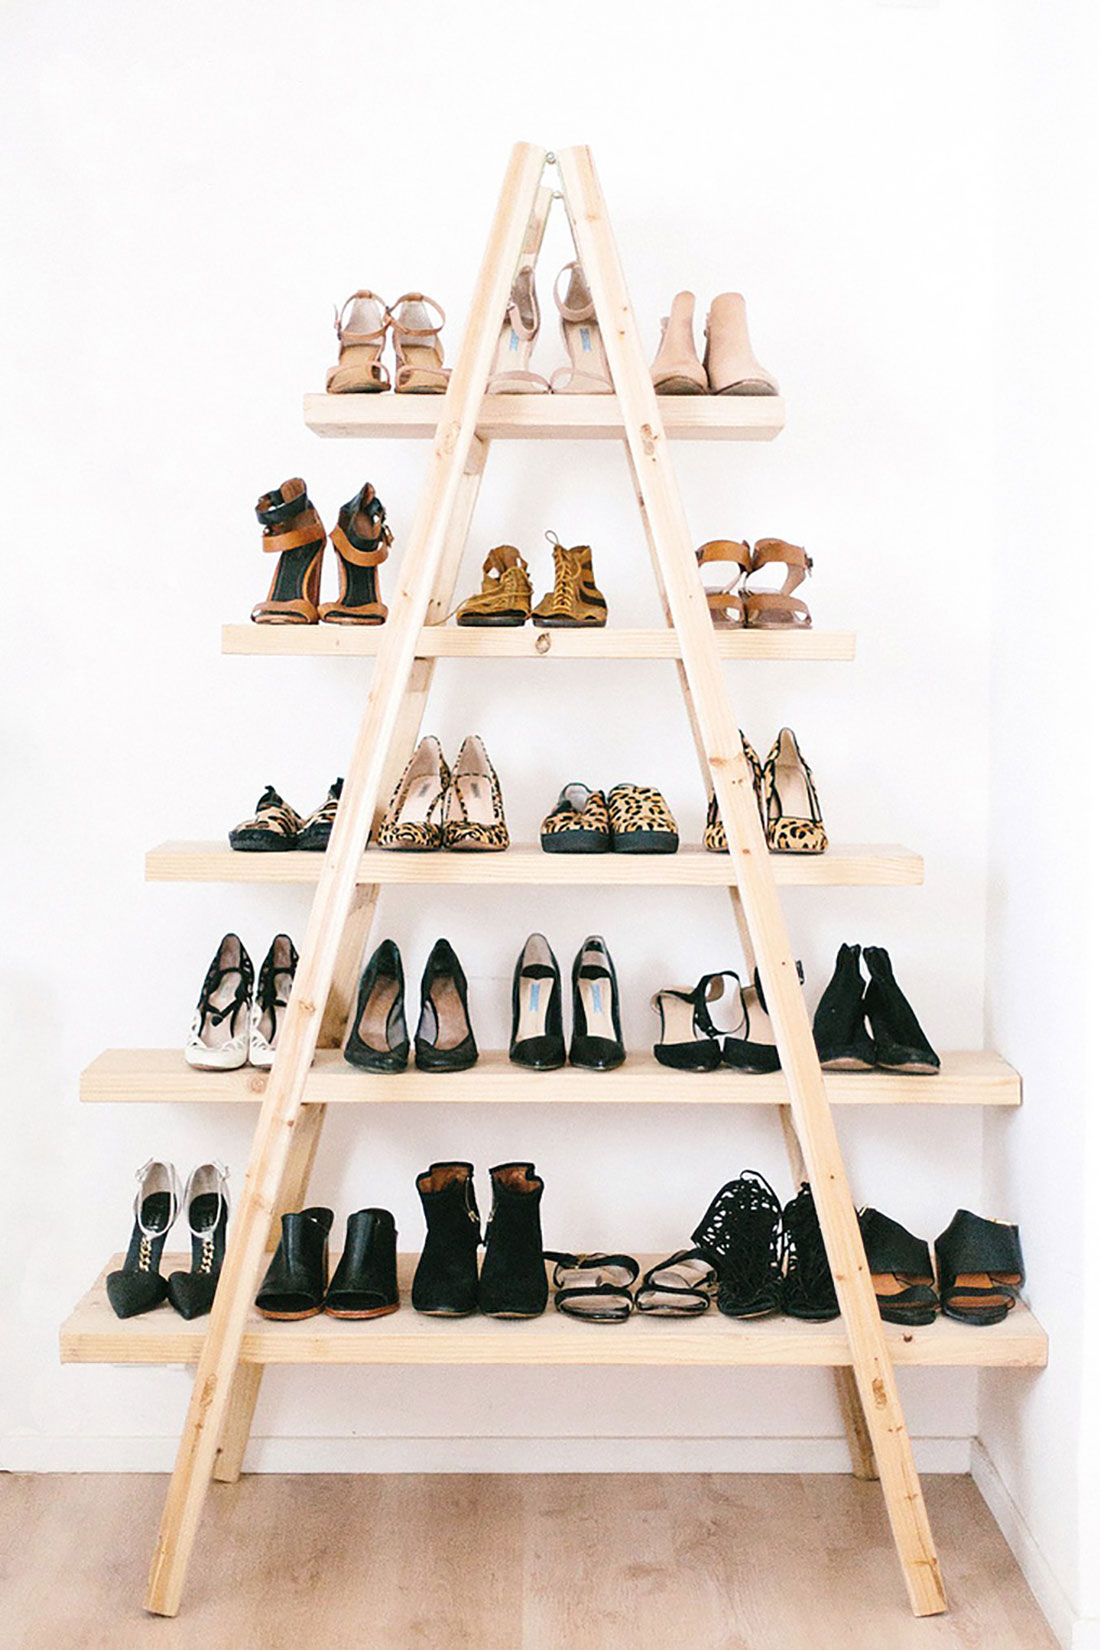 2. Turn A Ladder Into A Shoe Rack